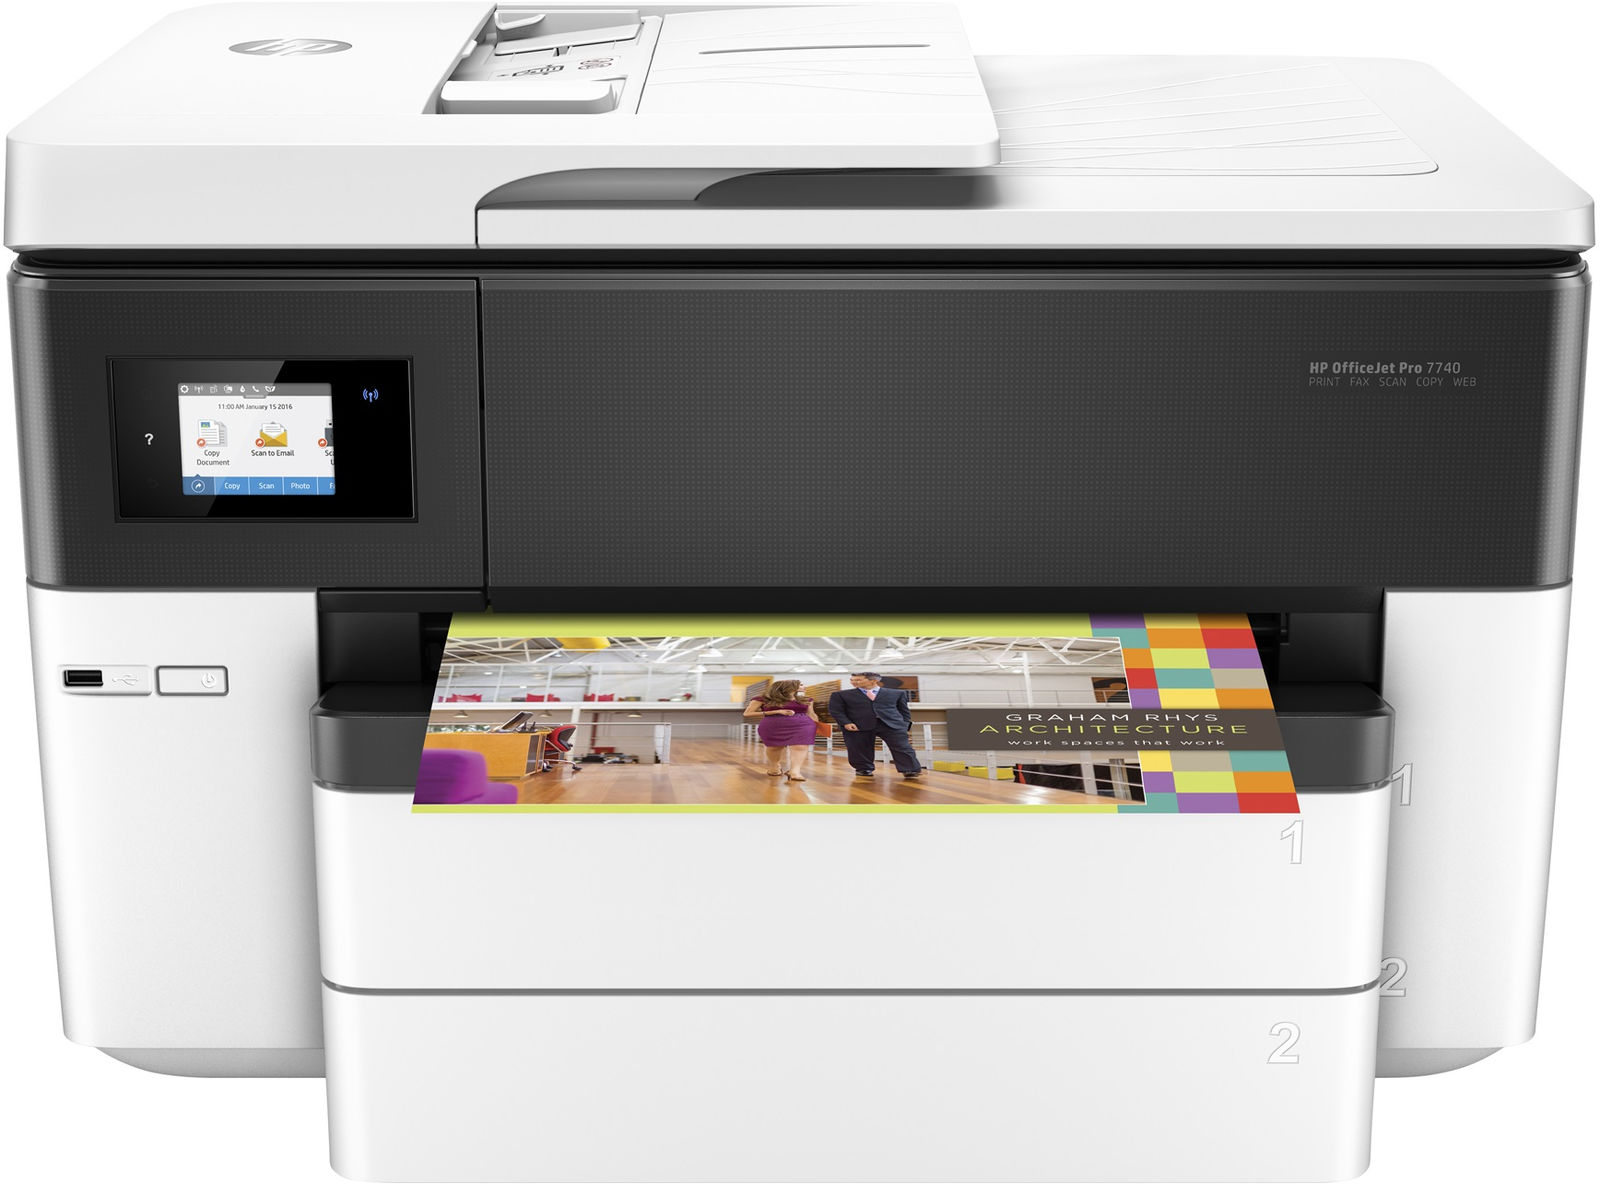 HP OfficeJet Pro 7740 Thermal Inkjet 22 ppm 4800 x 1200 DPI A3 Wi-Fi